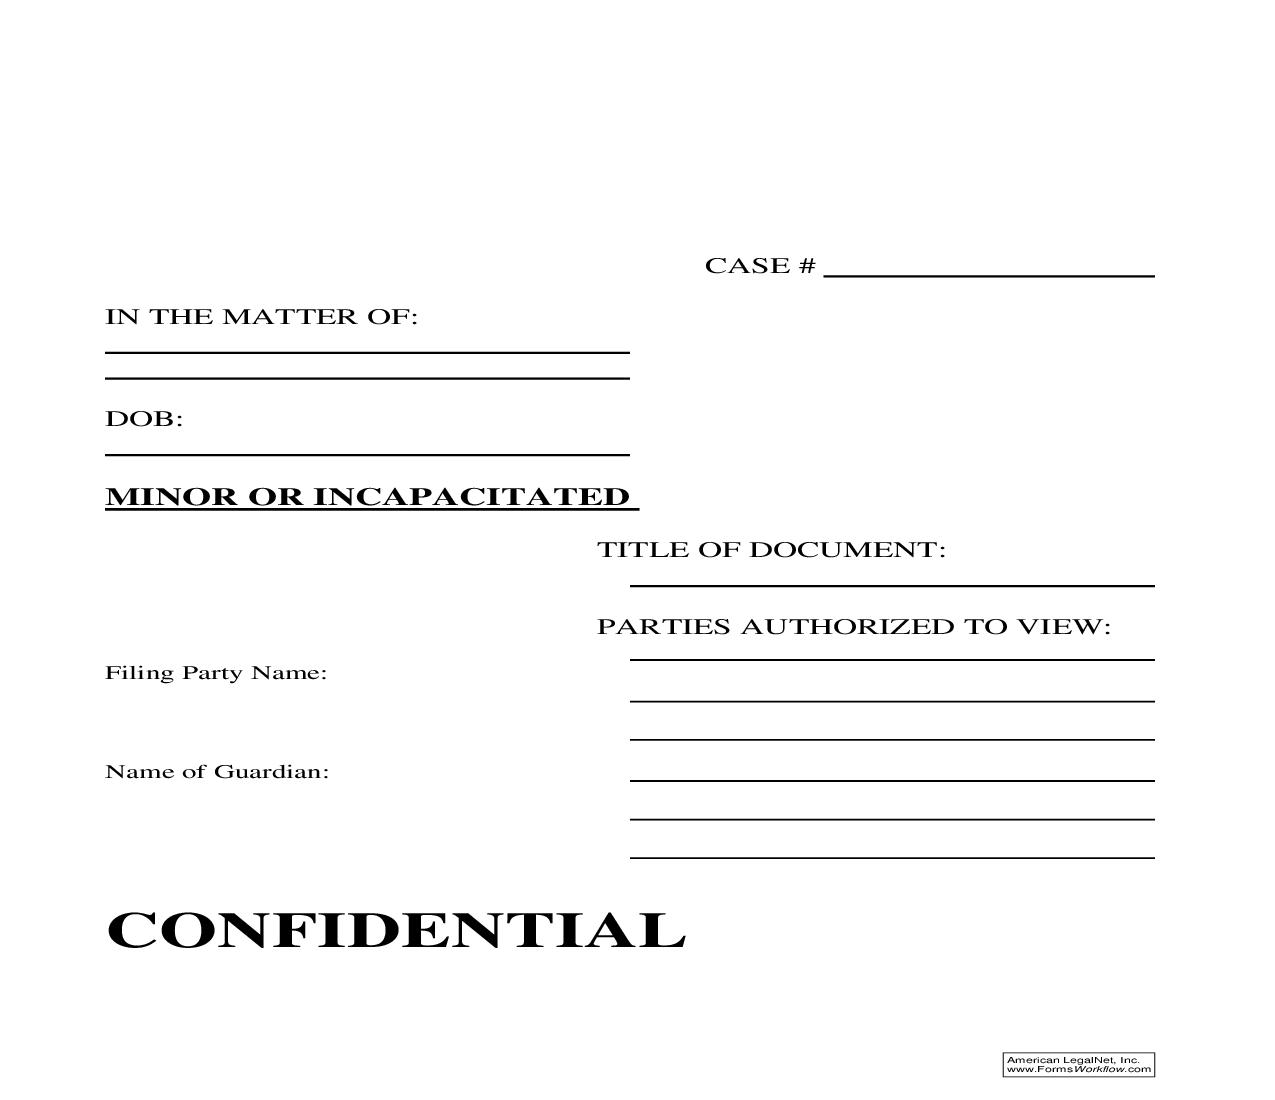 Investigator Confidential Filing Label (Blank Template For Use On Envelope) | Pdf Fpdf Doc Docx | Arizona